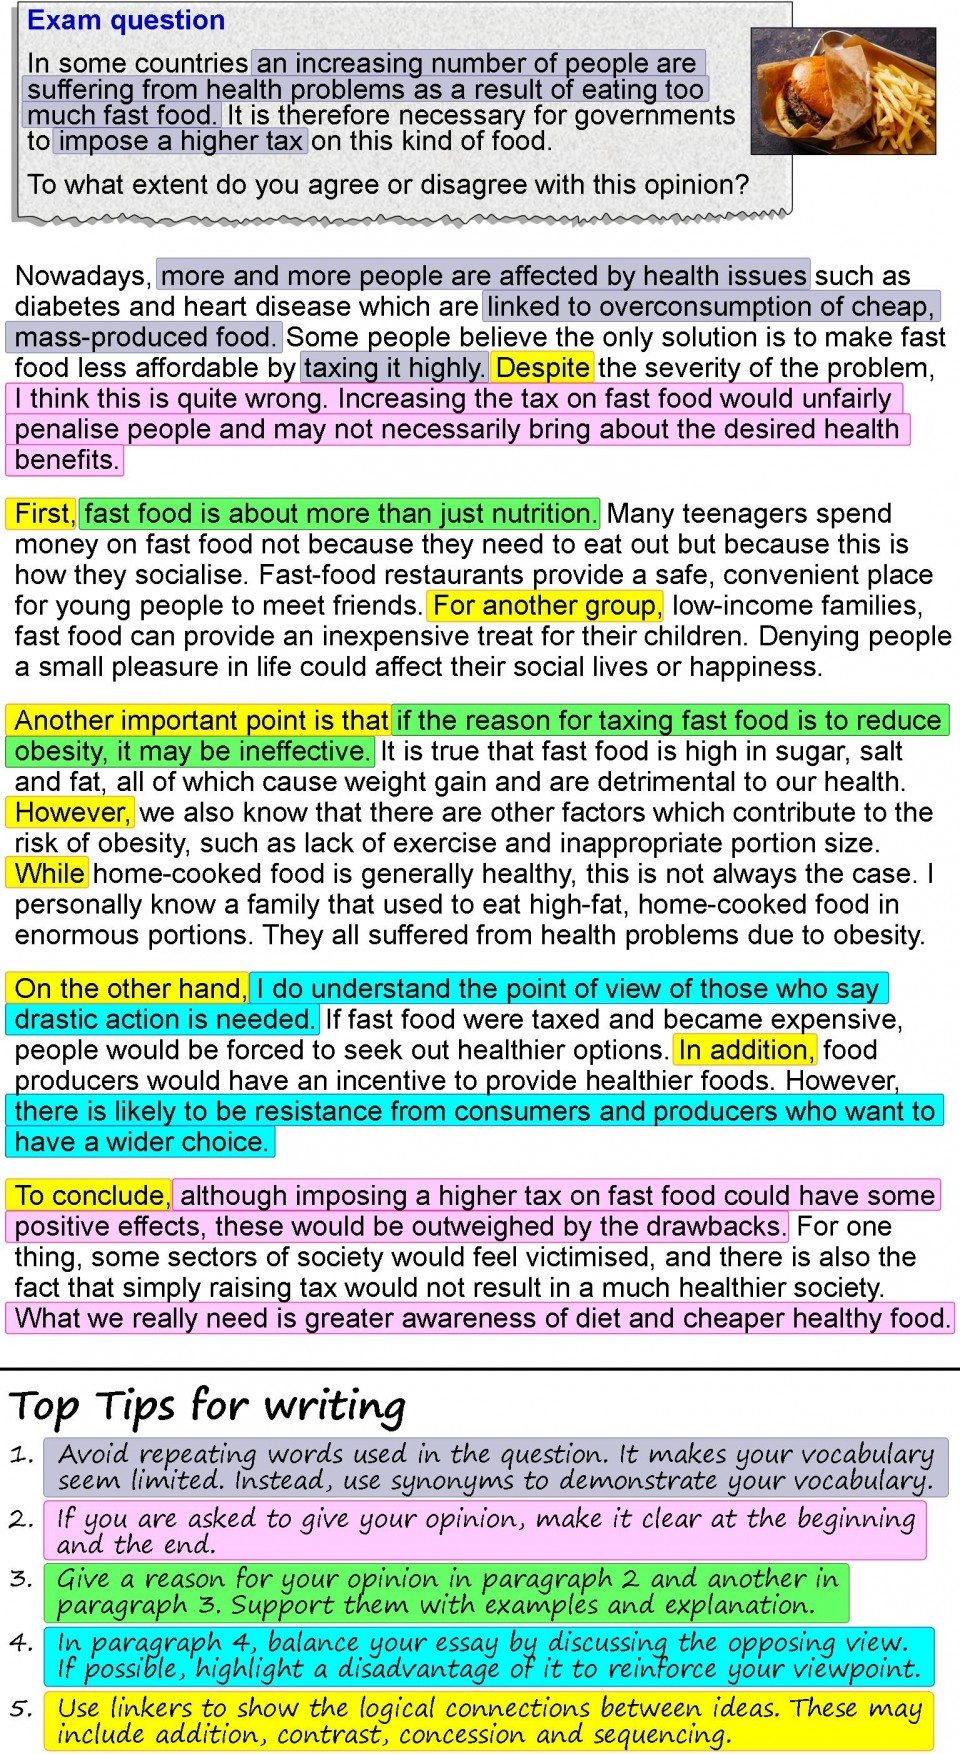 001 Opinion Essay About Fast Food Example An 4 Unbelievable Short British Council 960